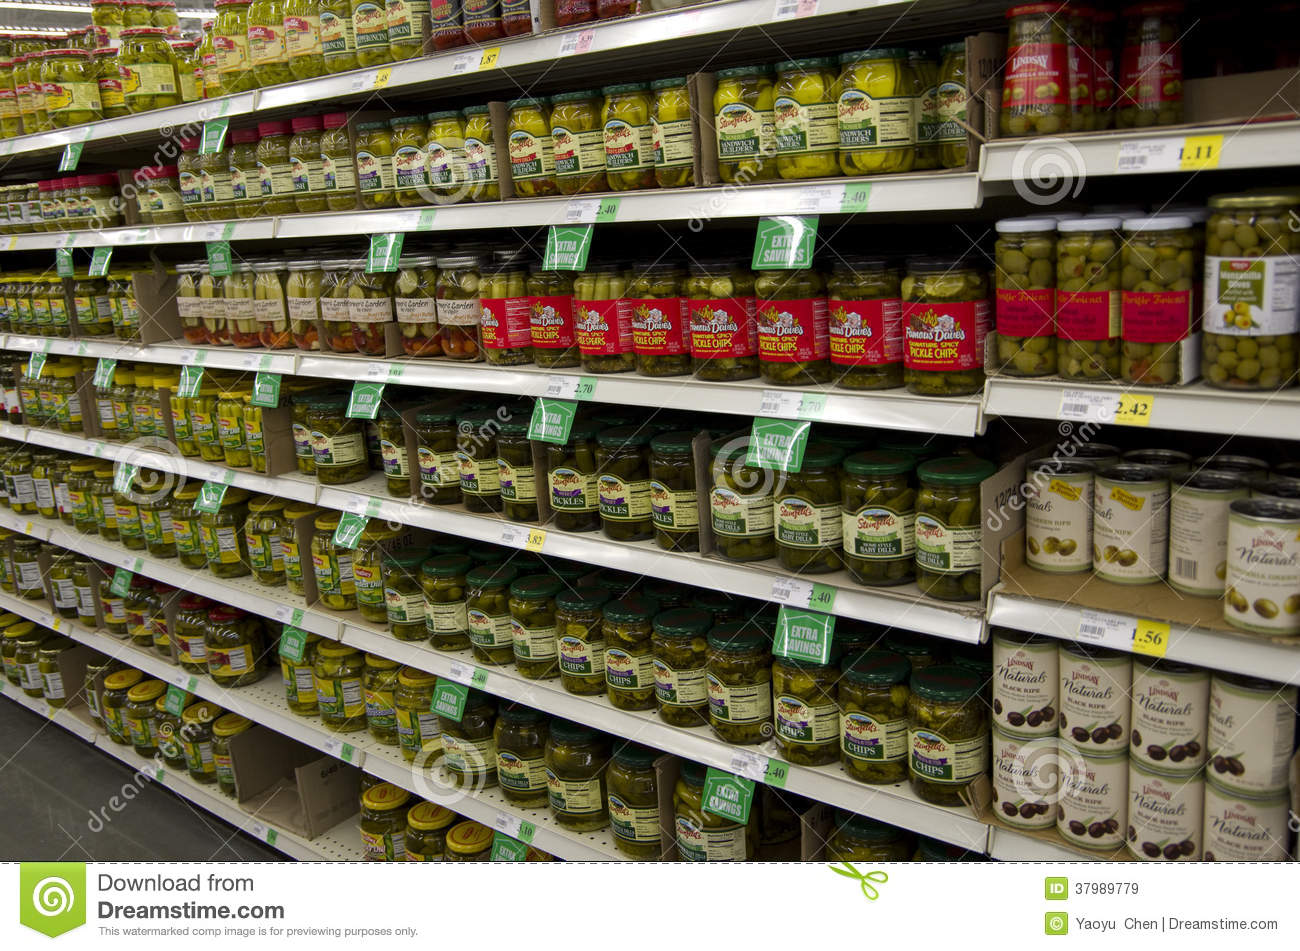 In the Aisle: Pickles